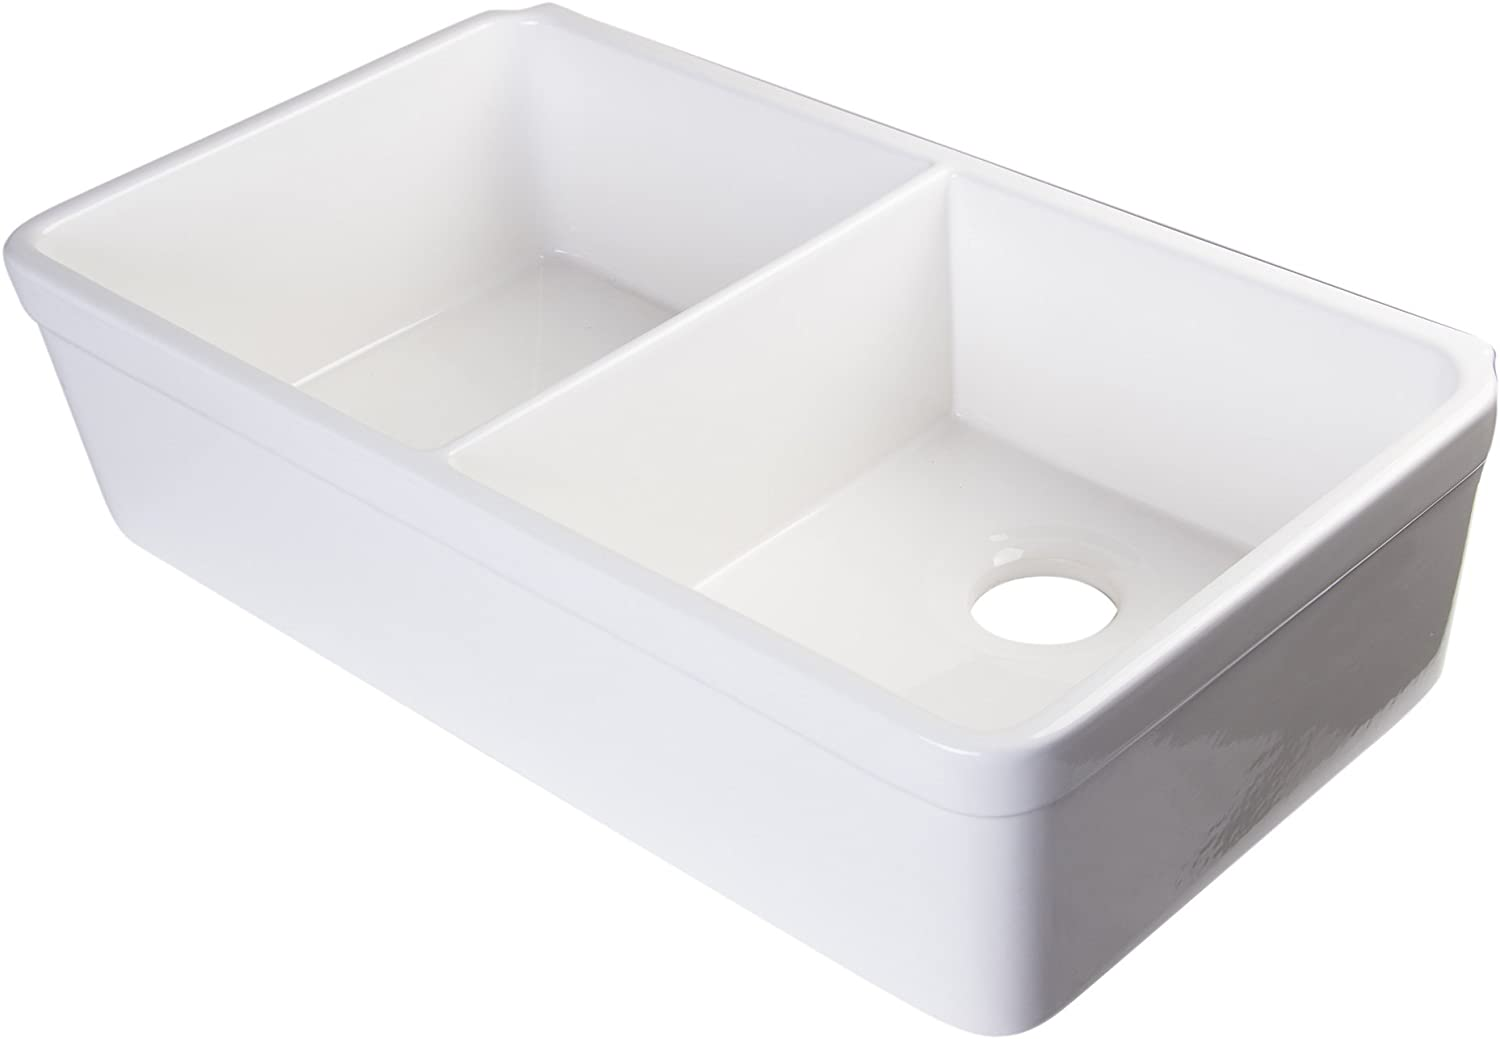 ALFI brand AB512 32-Inch Double Bowl Fireclay Farmhouse Kitchen Sink with 1 3 4-Inch Lip, White